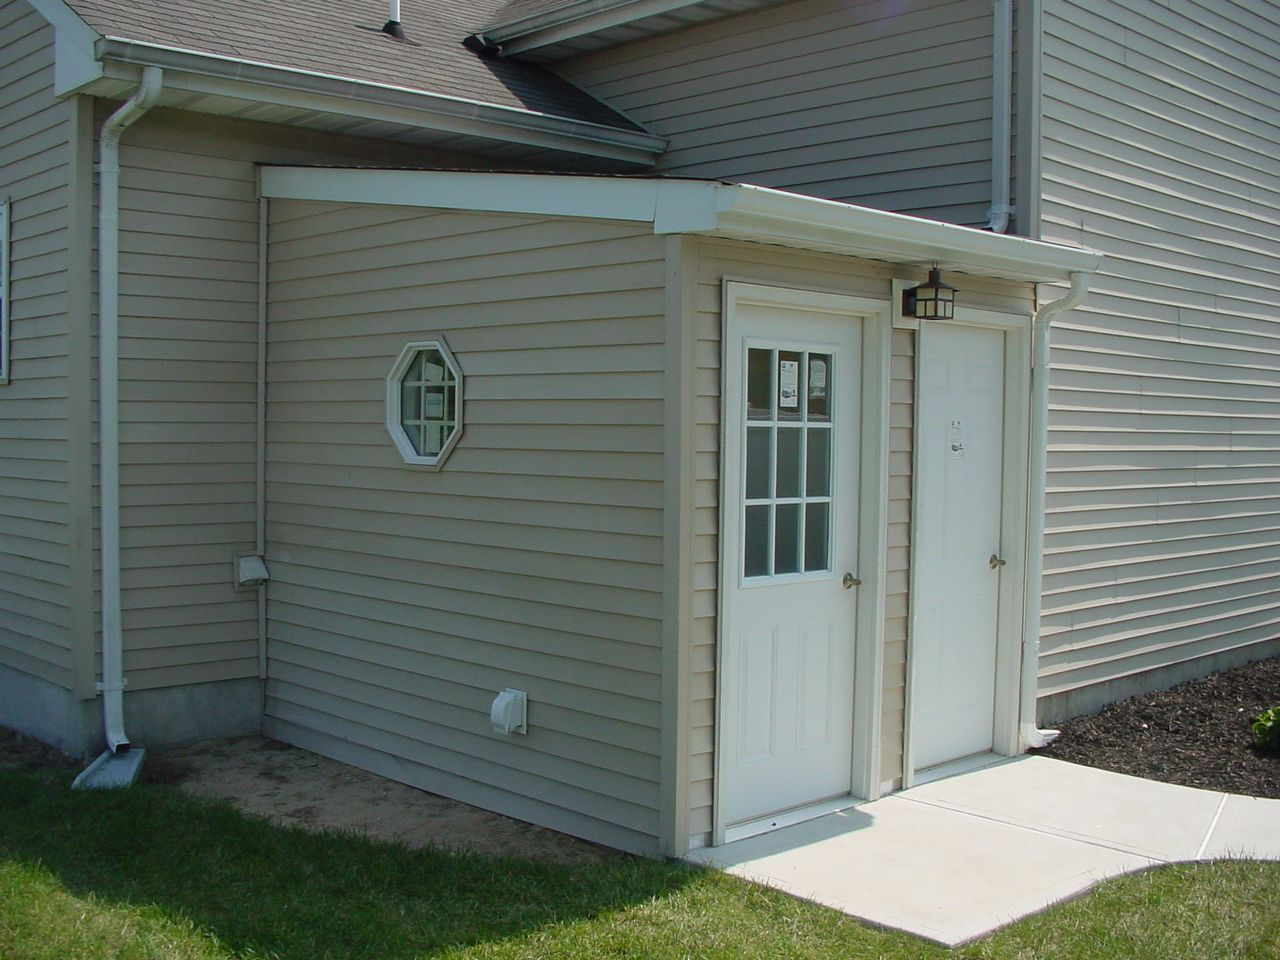 Basement Door Ideas an alternative to bilco doors! | backyard | pinterest